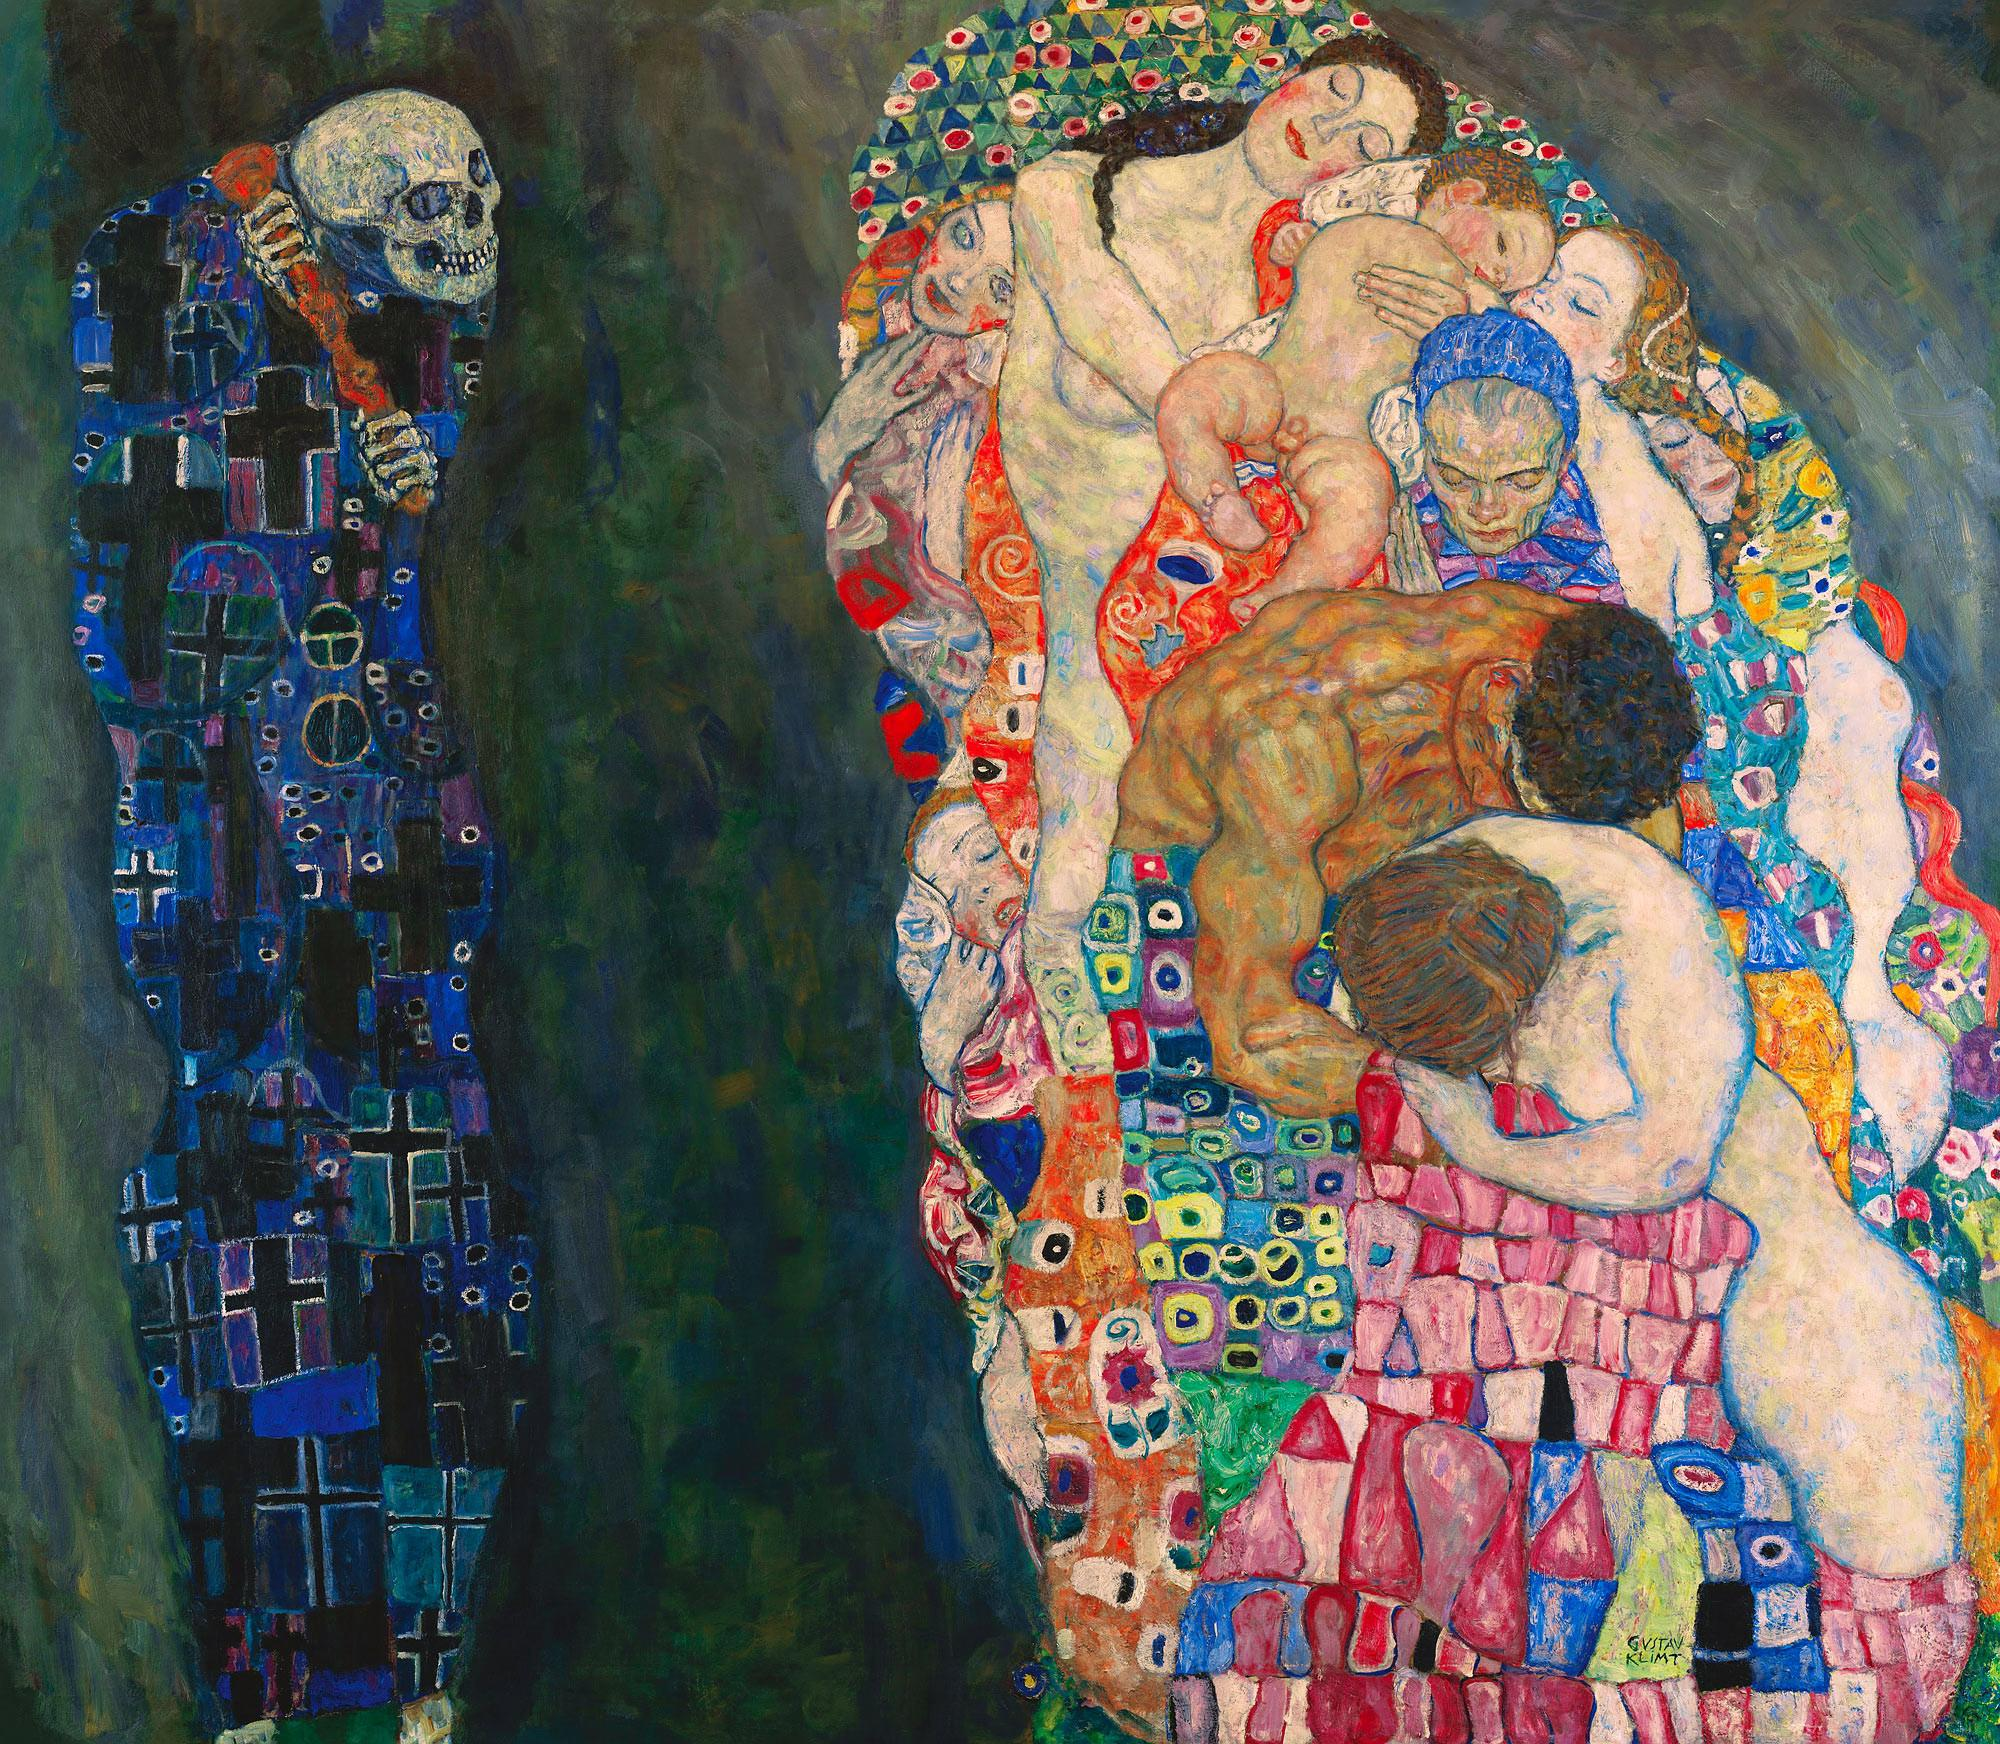 2000x1744 Gustav Klimt Wallpaper , (67+) image collections of wallpapers